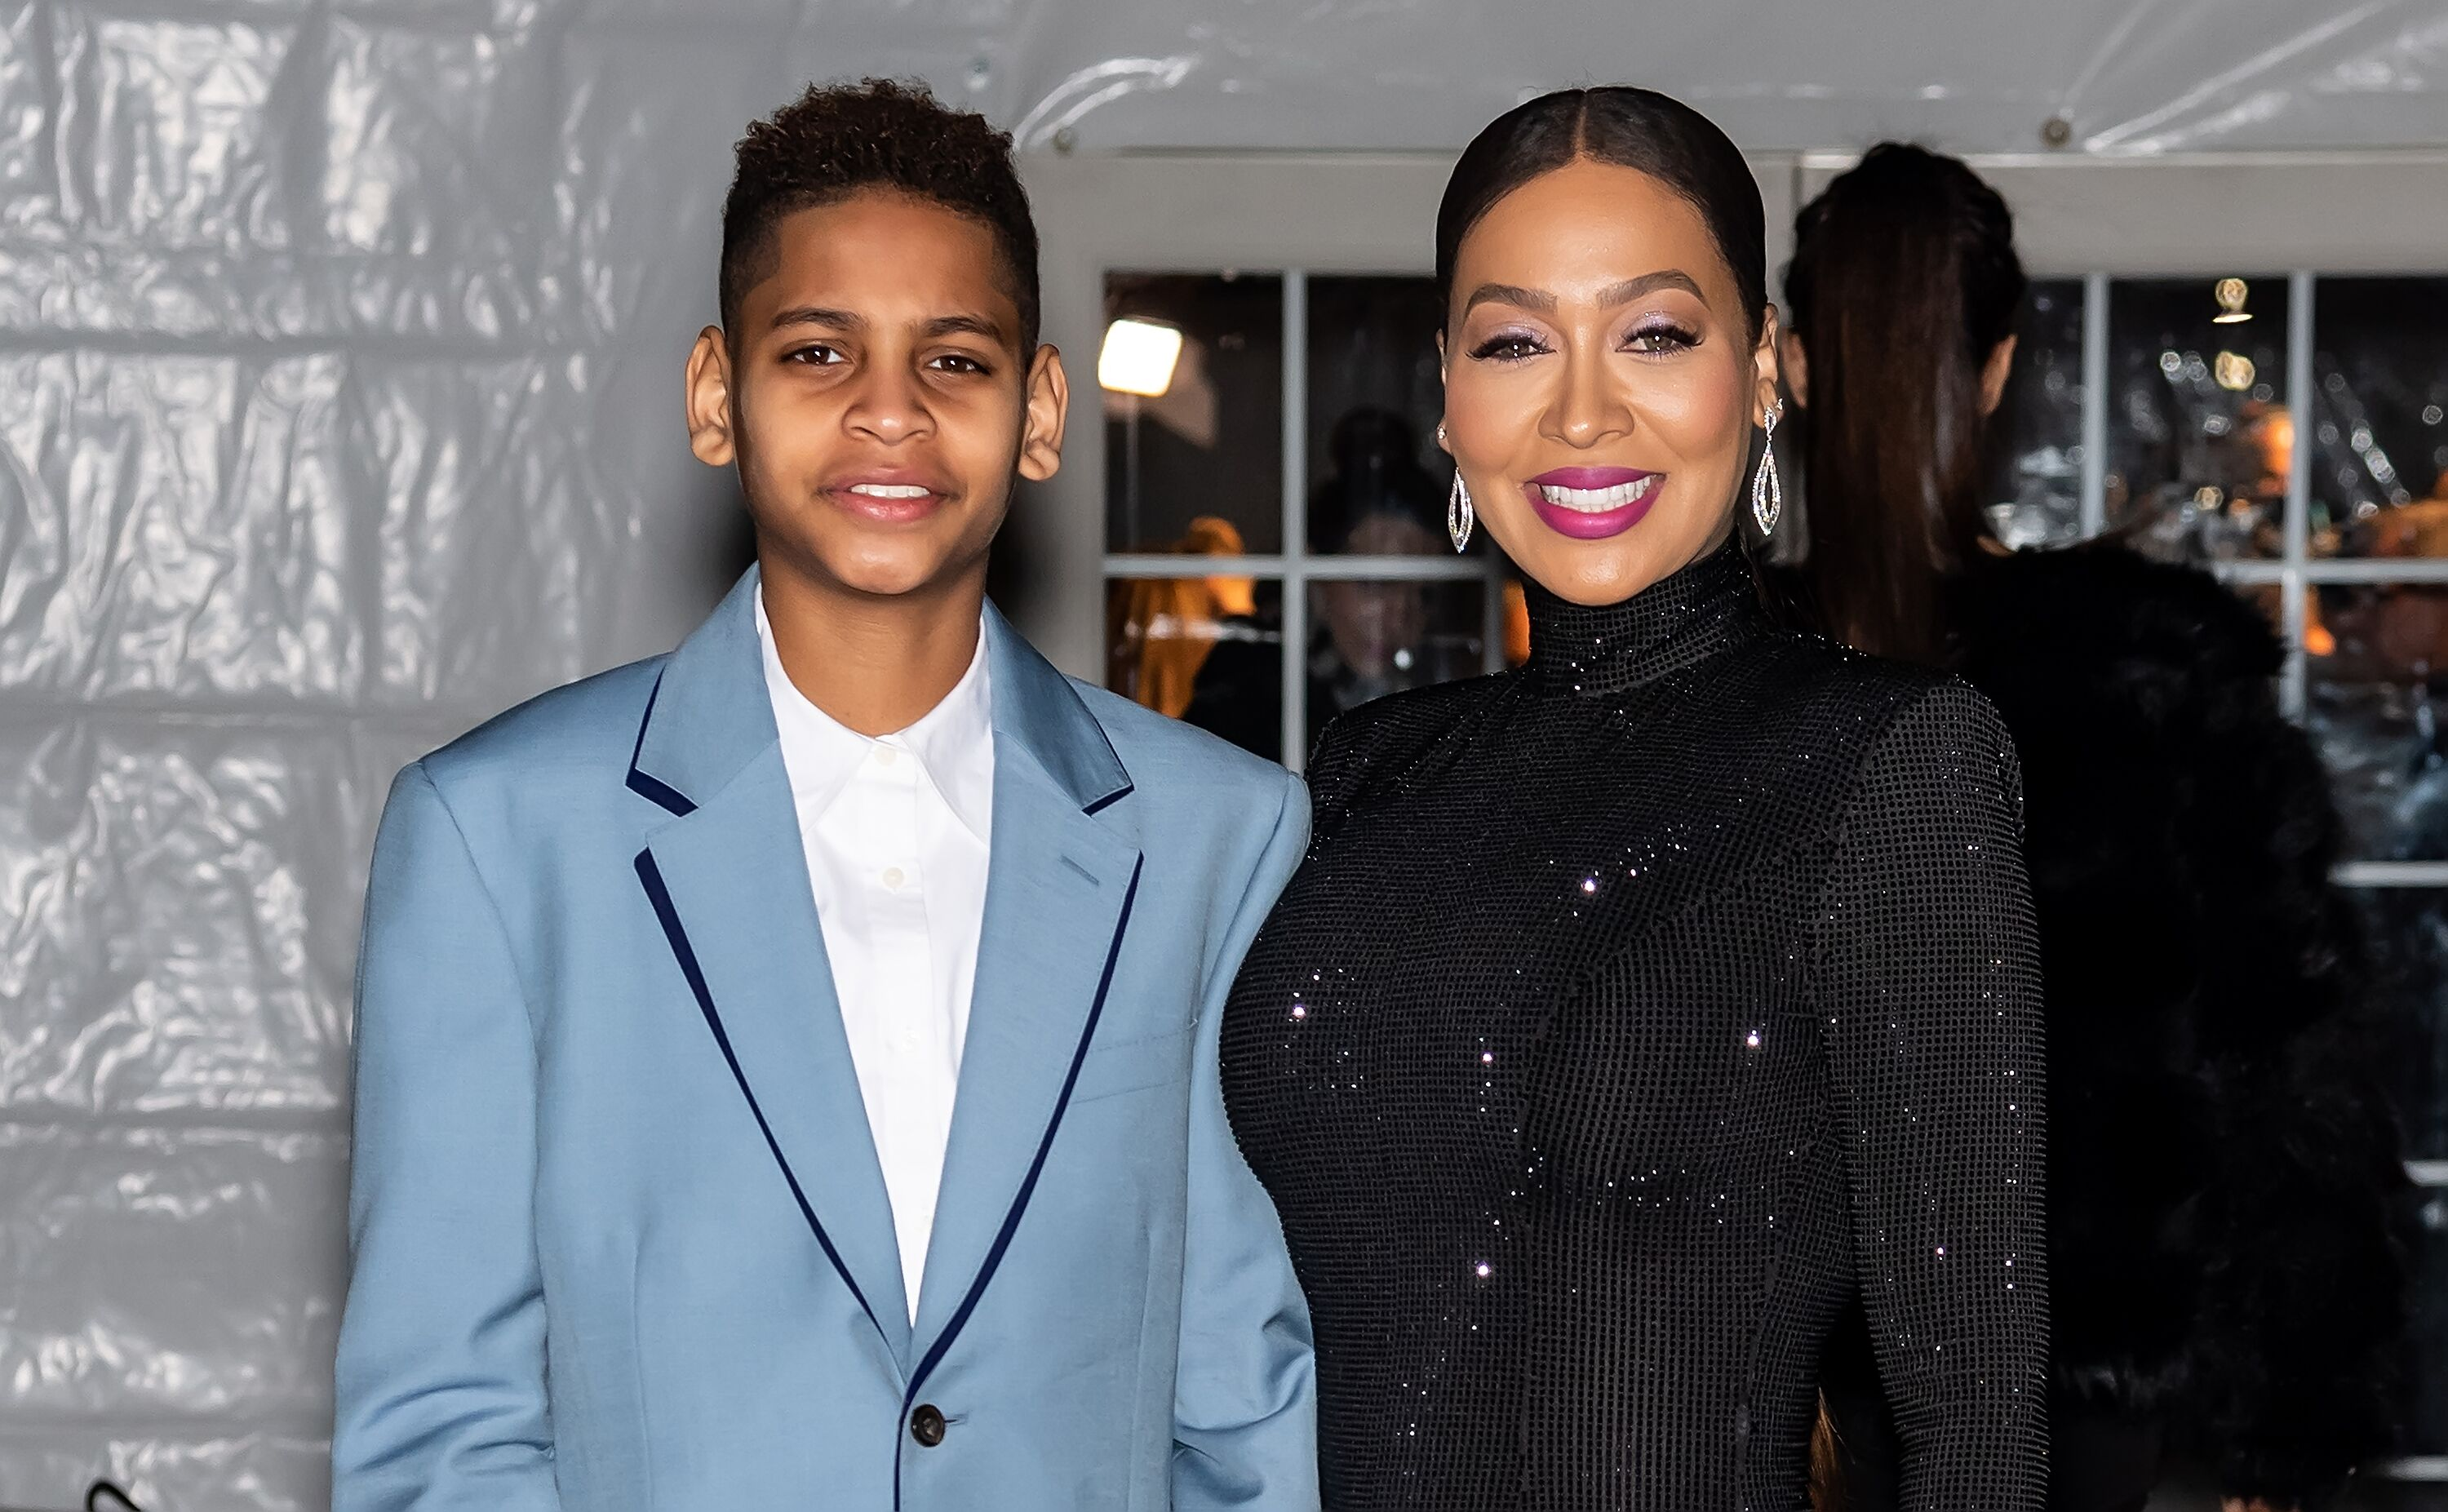 Kiyan Carmelo Anthony and La La Anthony are seen arriving to the 2020 amfAR New York Gala at Cipriani Wall Street on February 05, 2020 in New York City. | Source: Getty Images